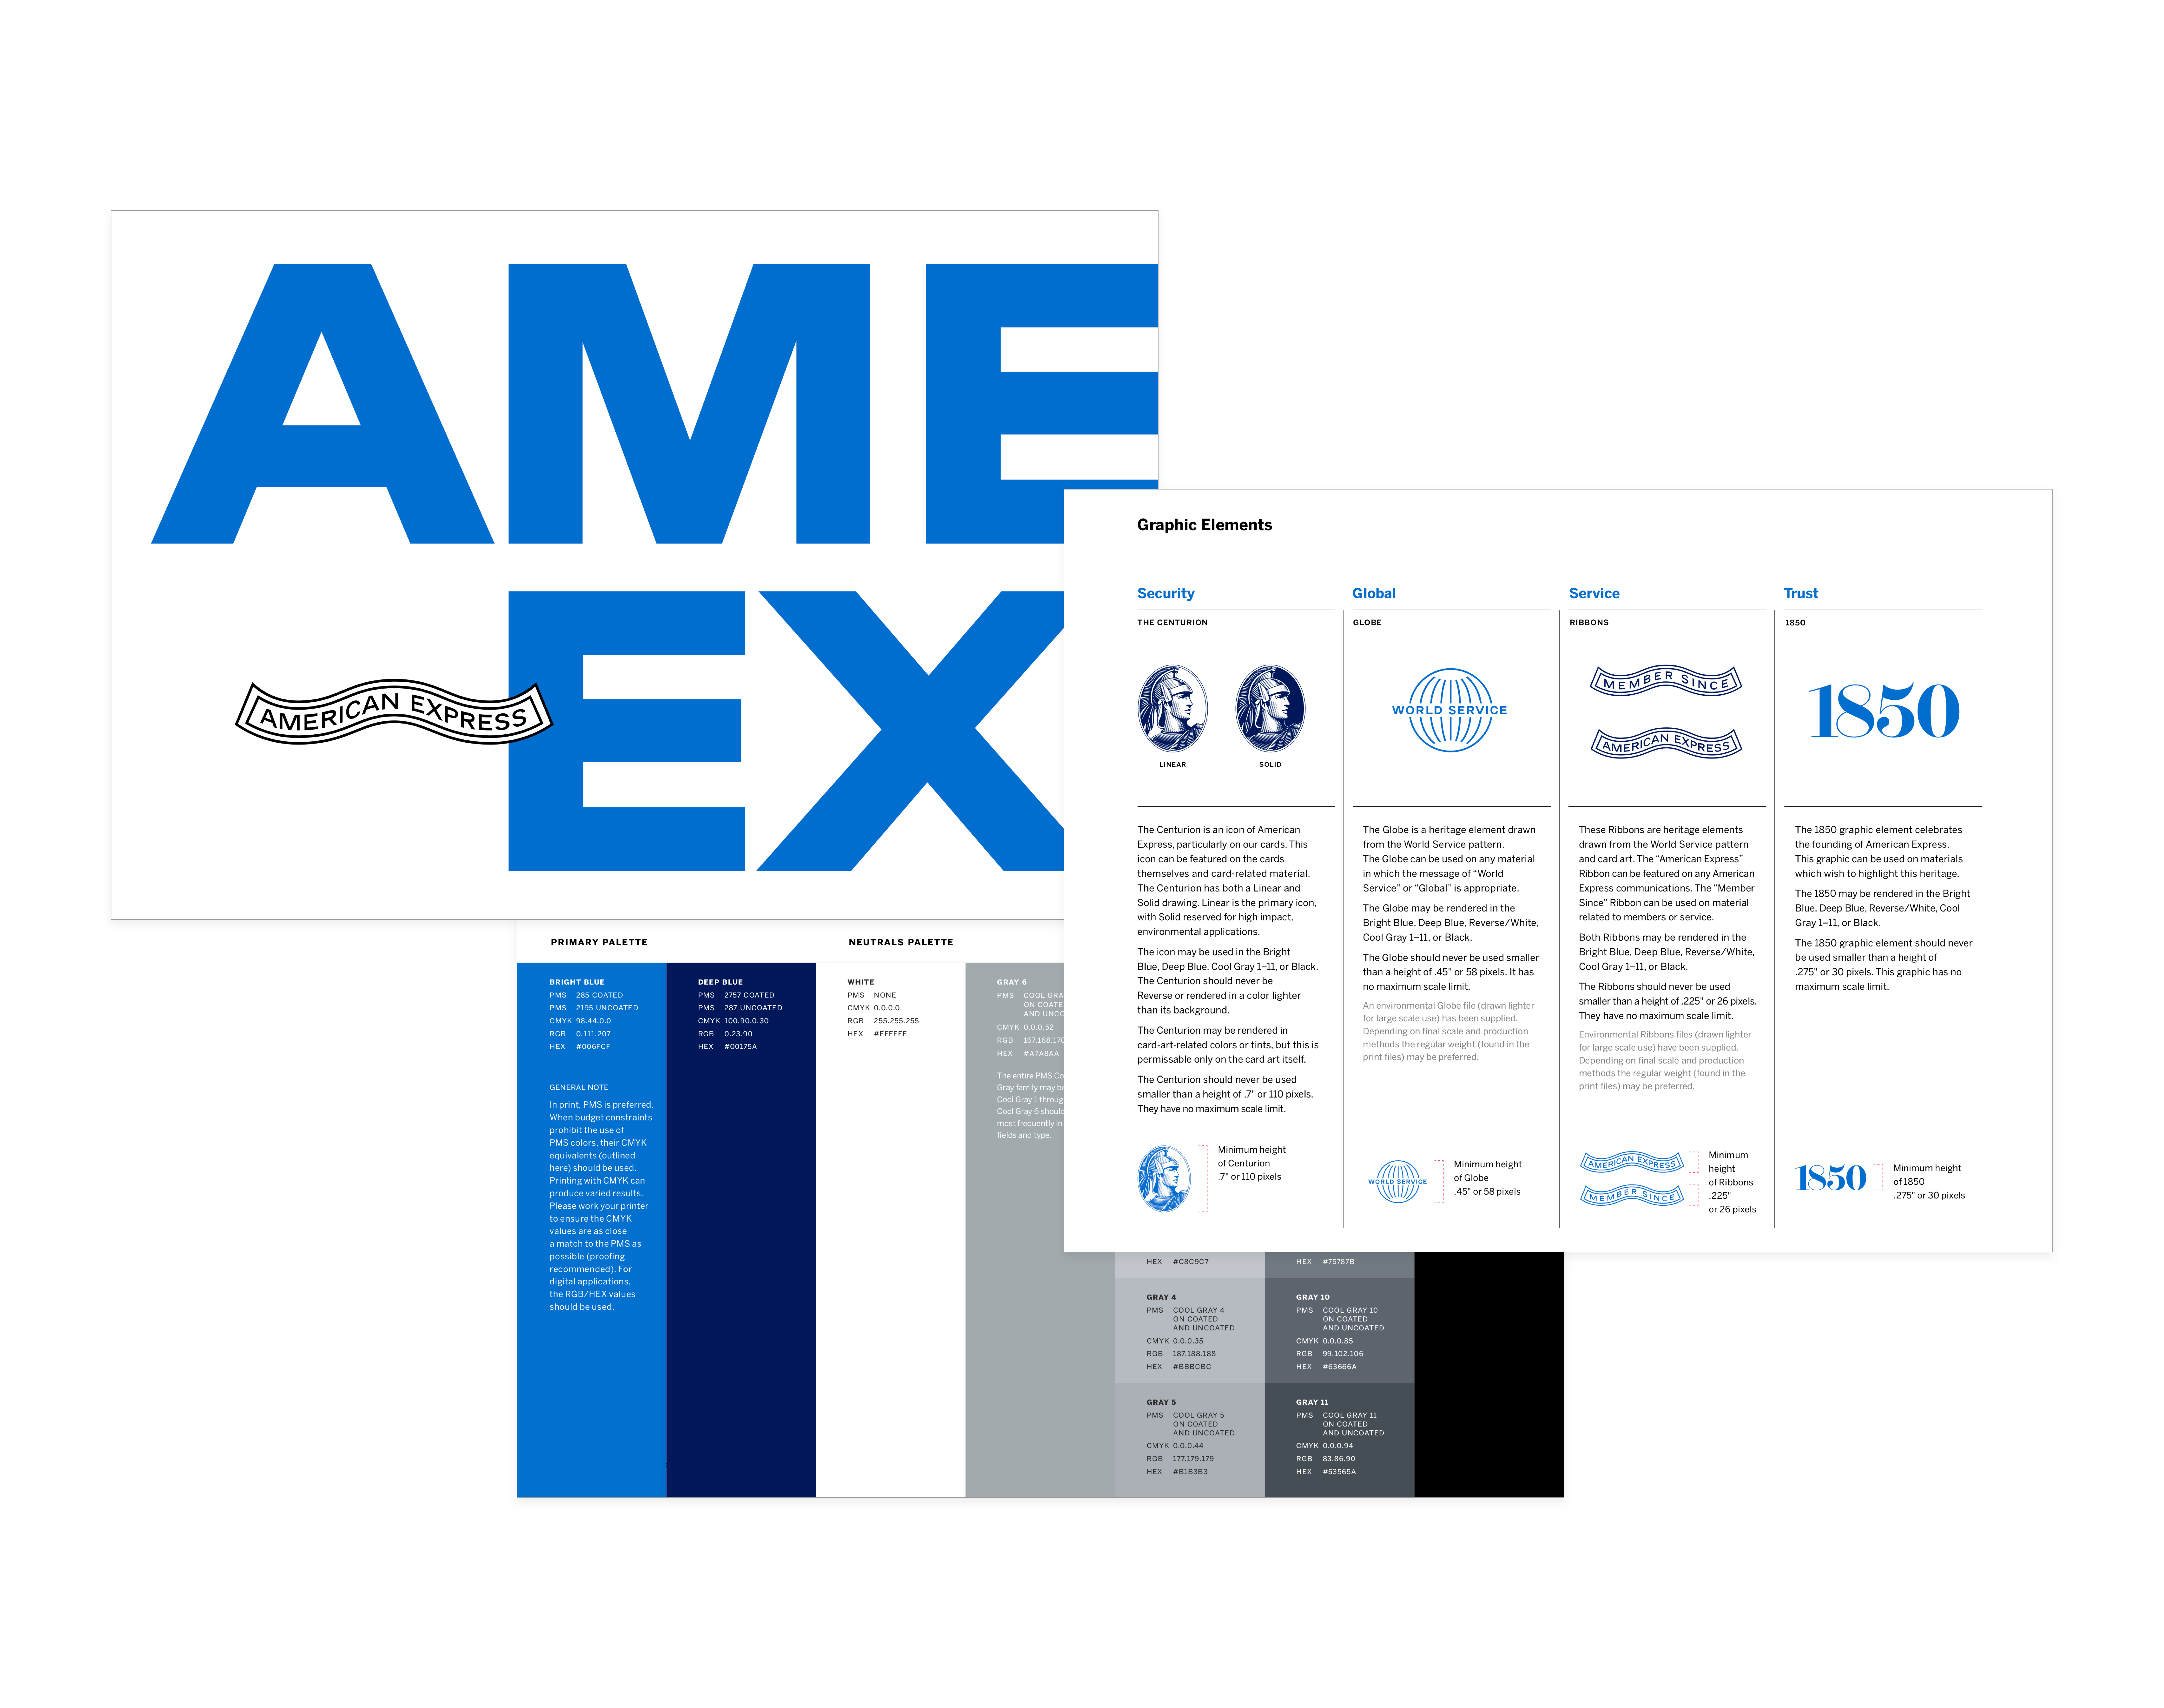 Visual Identity Brand Attributes: Exceptional, Powerful, Enduring, Sophisticated, Essential, Agile, Connected, Dynamic, Contemporary & Aware